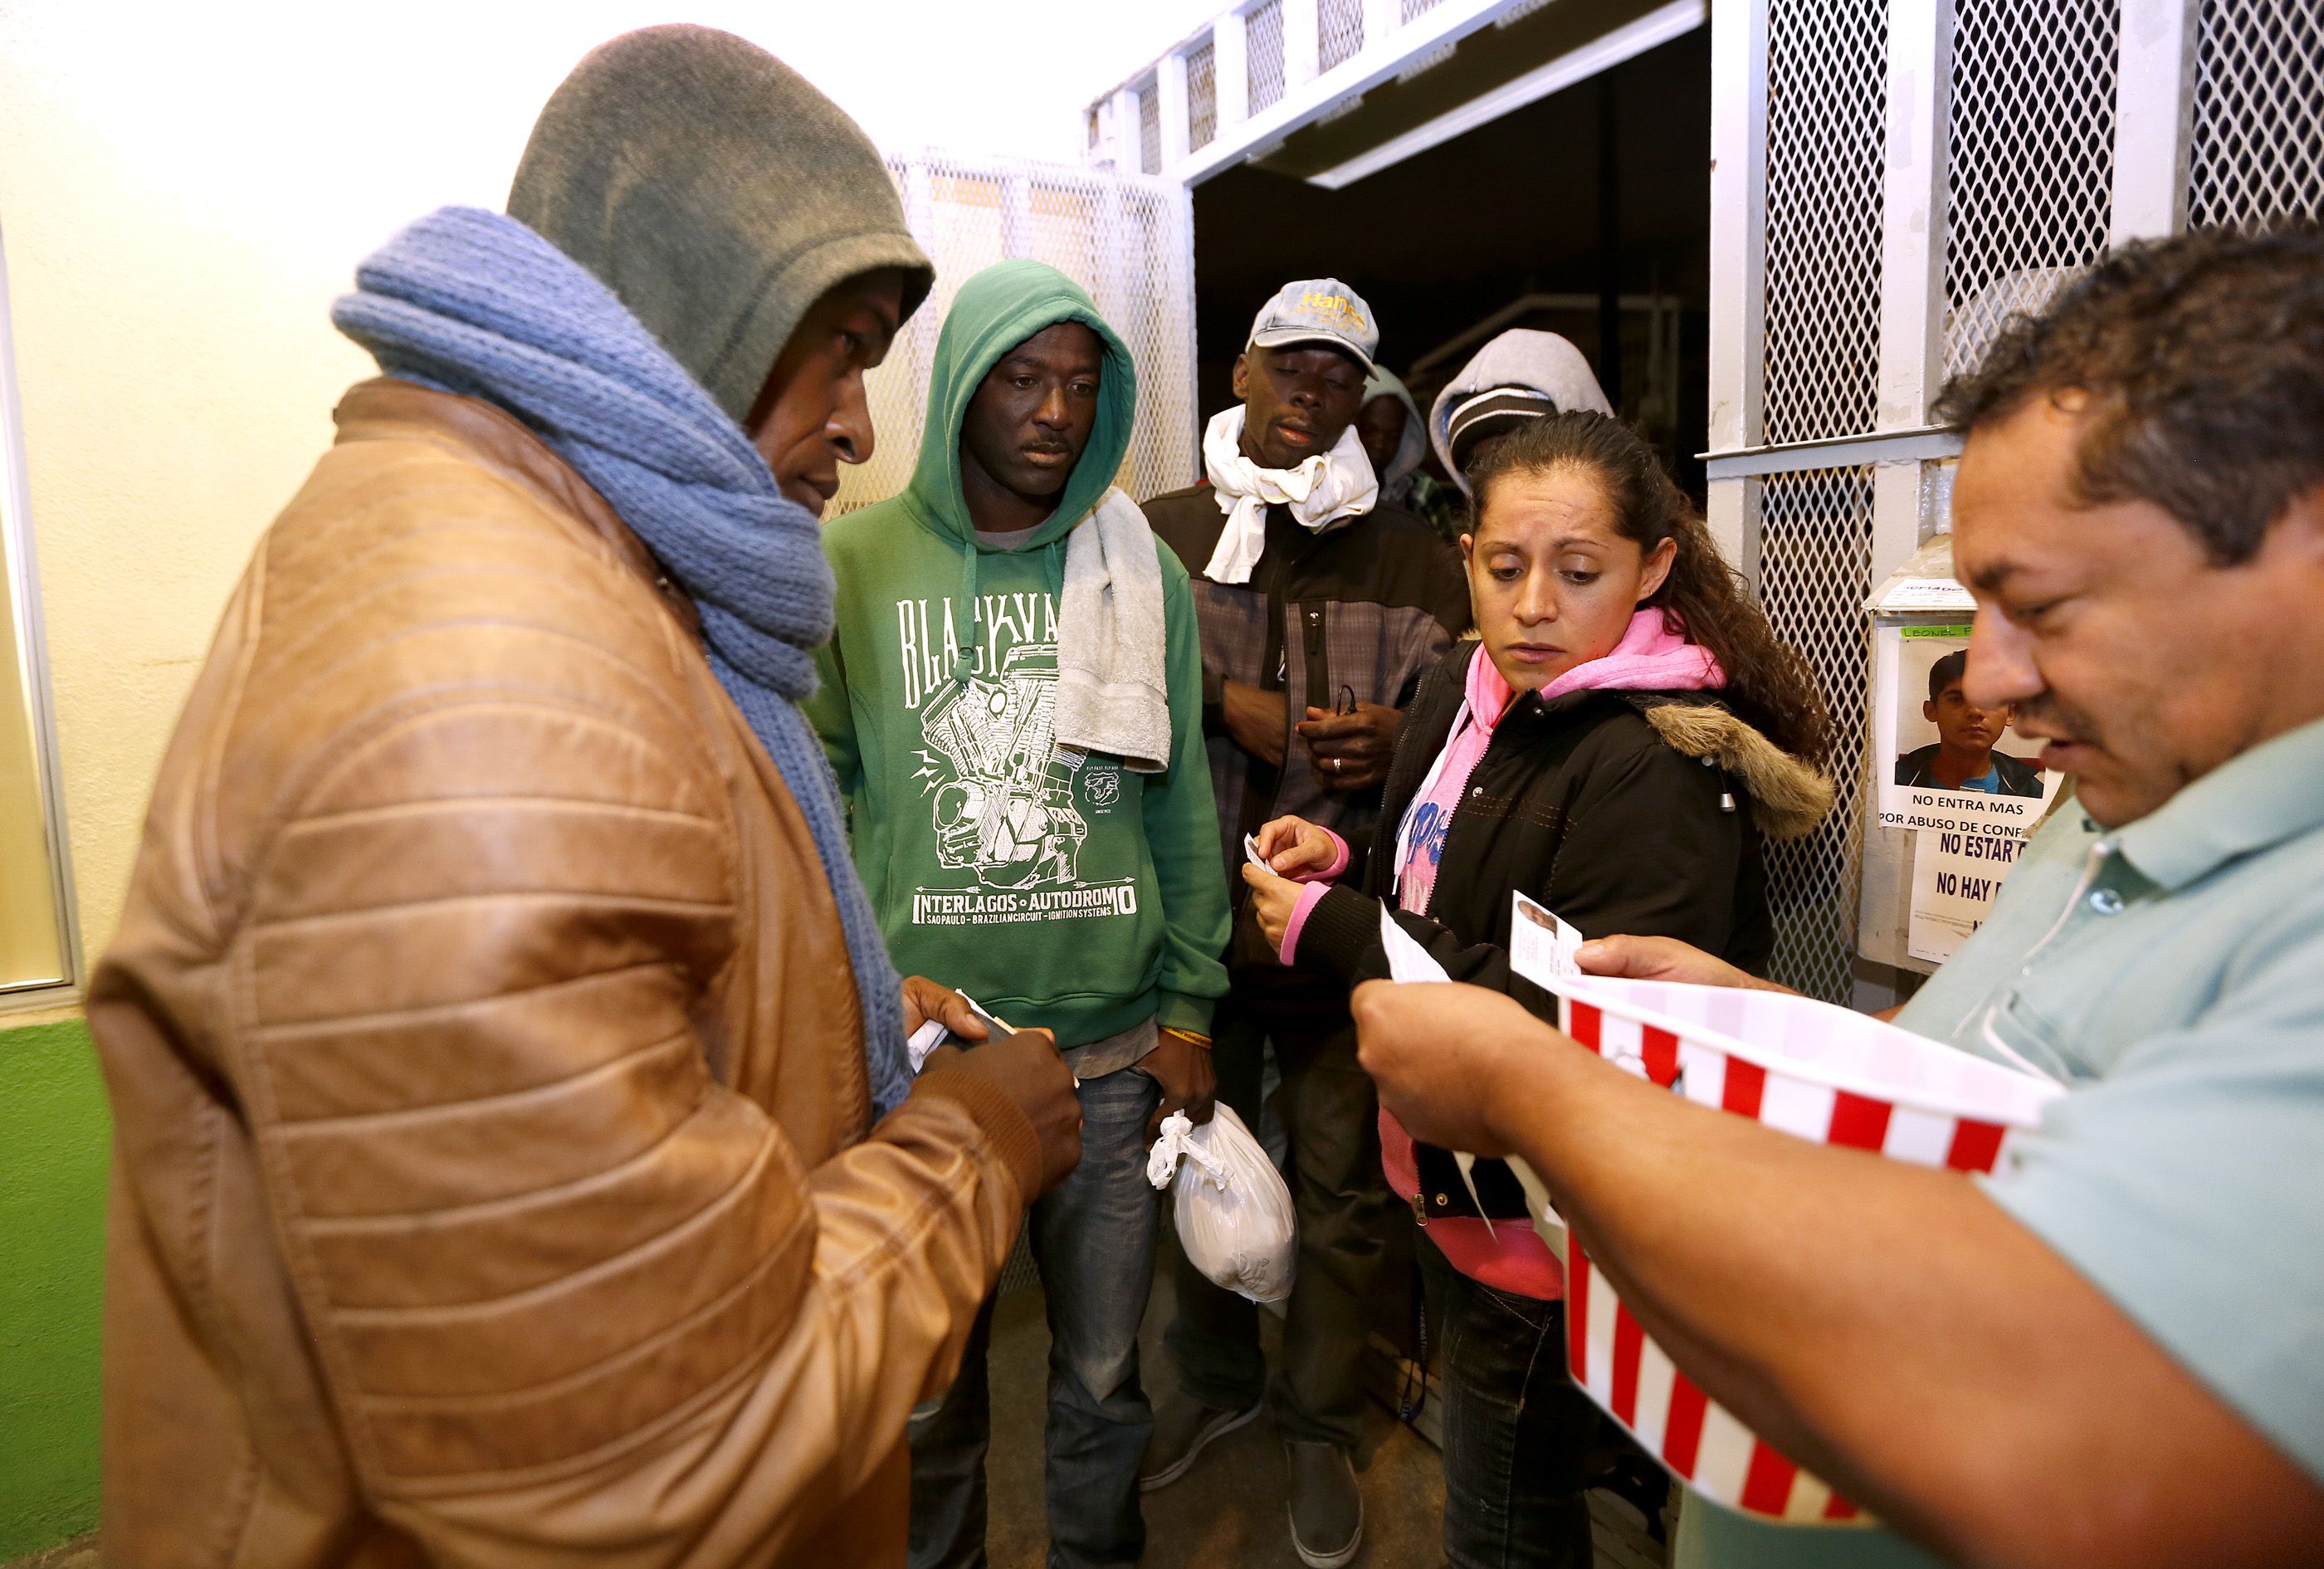 12/08/16/ TIJUANA/A large group of Haitian refugees seek shelter at the Casa del Migrante in Tijuana. An unprecedented arrival of Haitians and others seeking entry into the United States in recent weeks has sent Tijuanas migrant shelters scrambling to find beds, blankets, food and other necessities to serve this increase of people awaiting processing by U.S. authorities. (Photo Aurelia Ventura/ La Opinion)